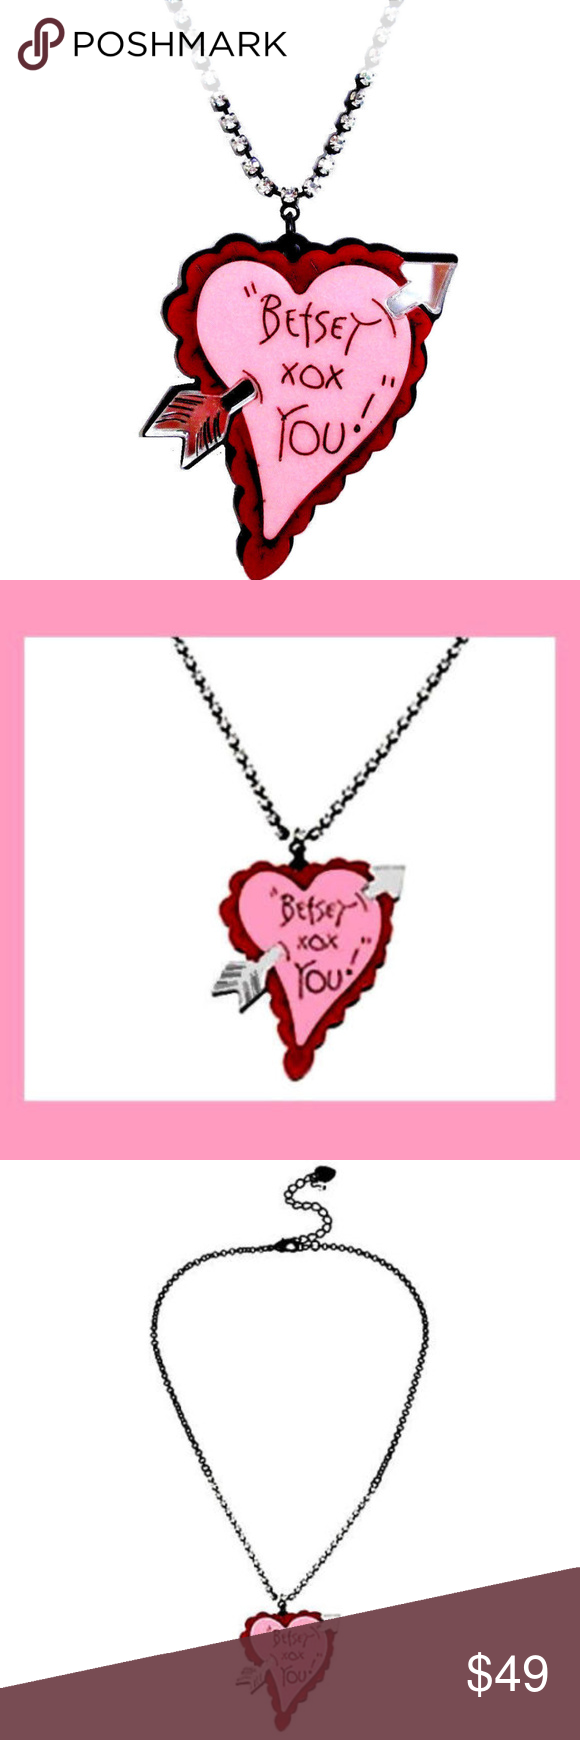 Crystal Chain Necklace Acrylic Heart Mirror Arrow Pink Heart Pendant Crystal Chain Arrow Pendant Necklace